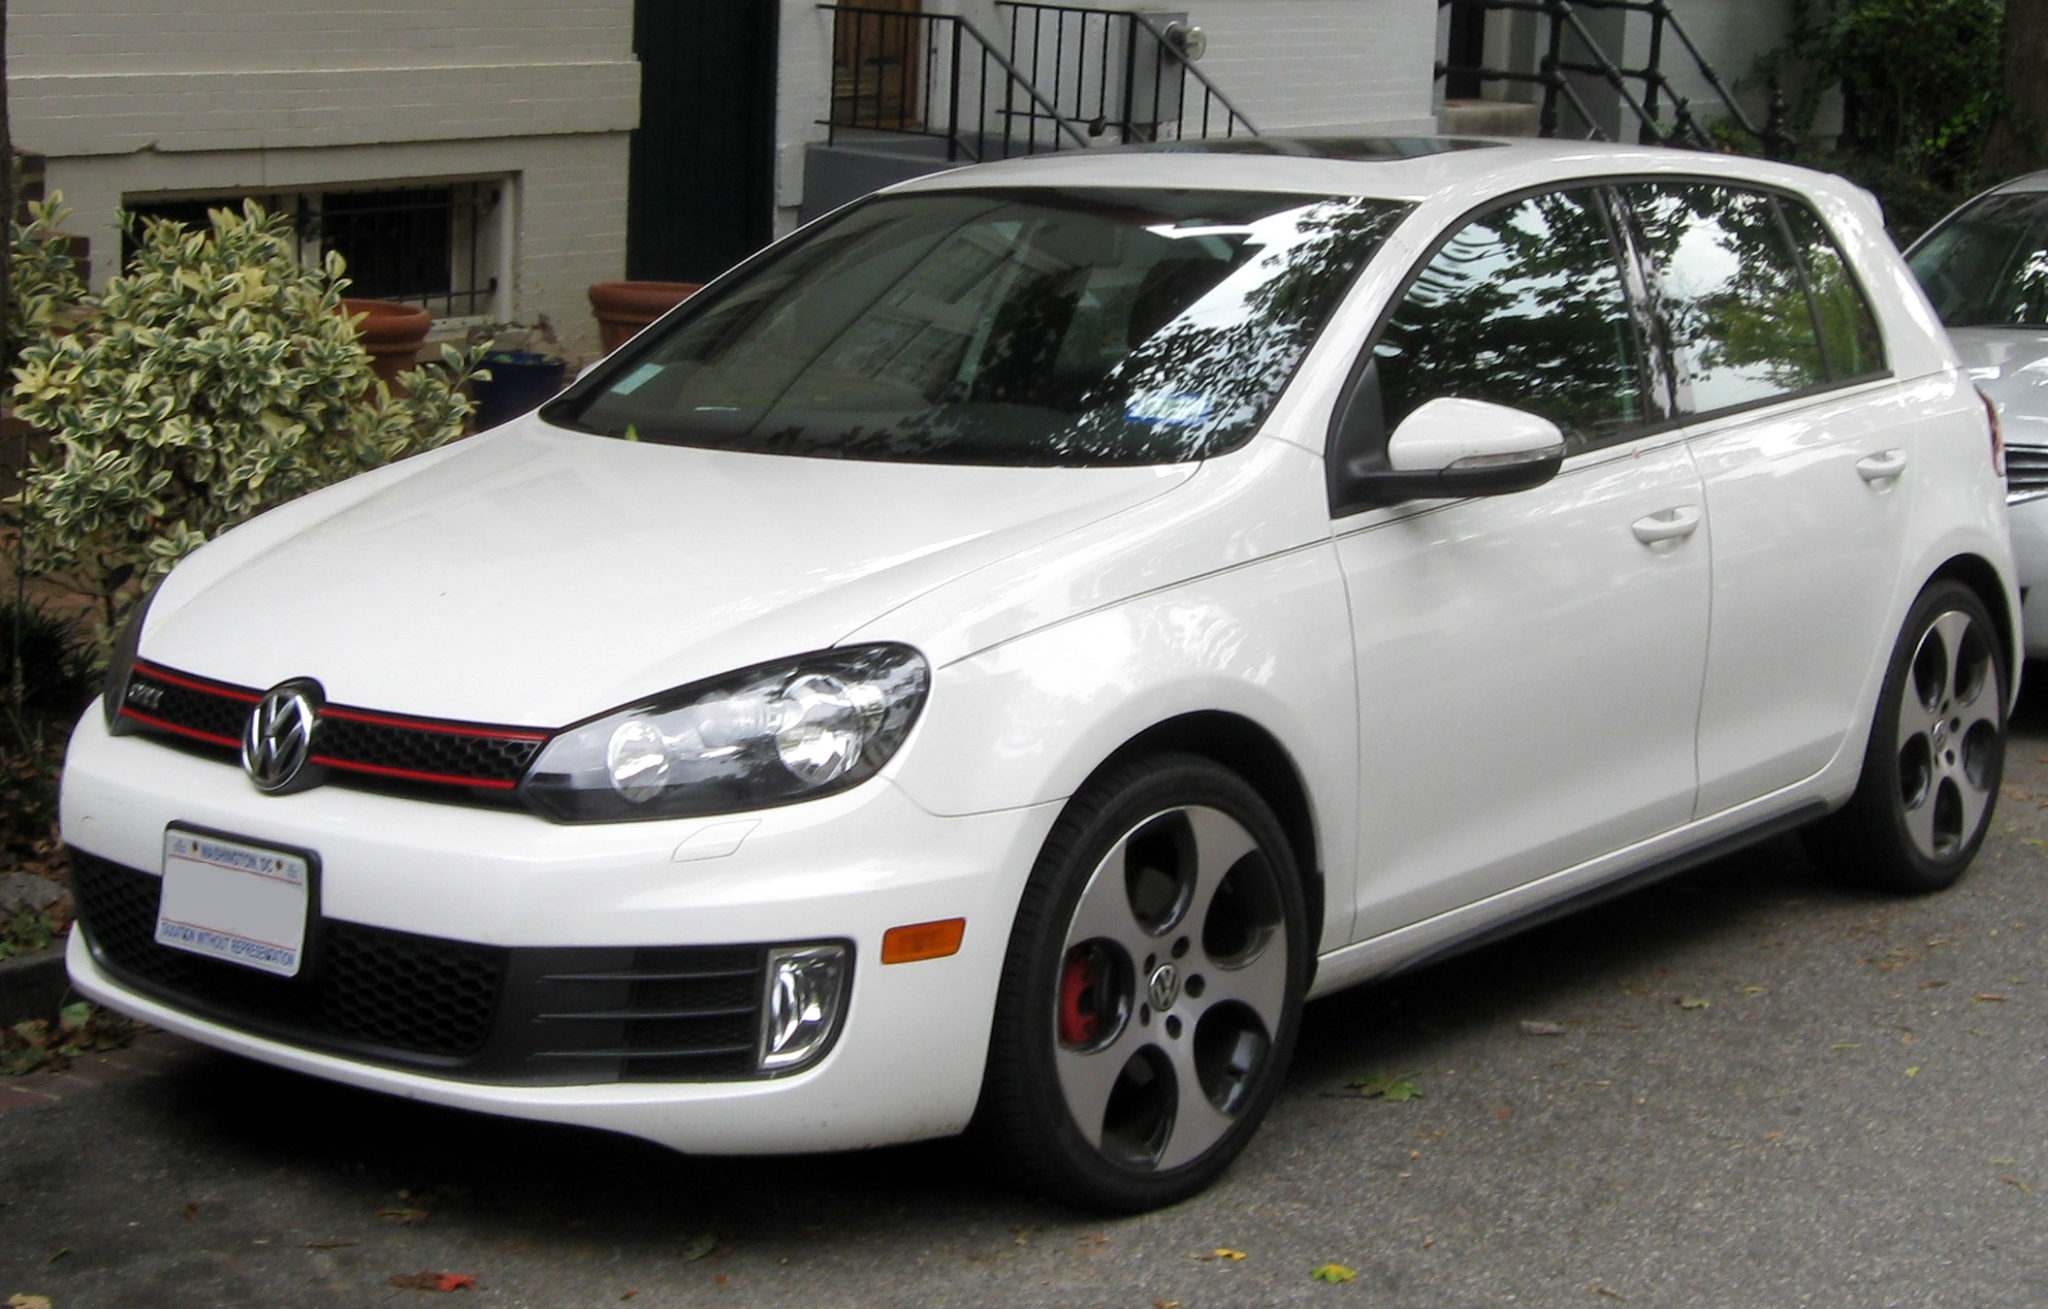 financing for a VW car